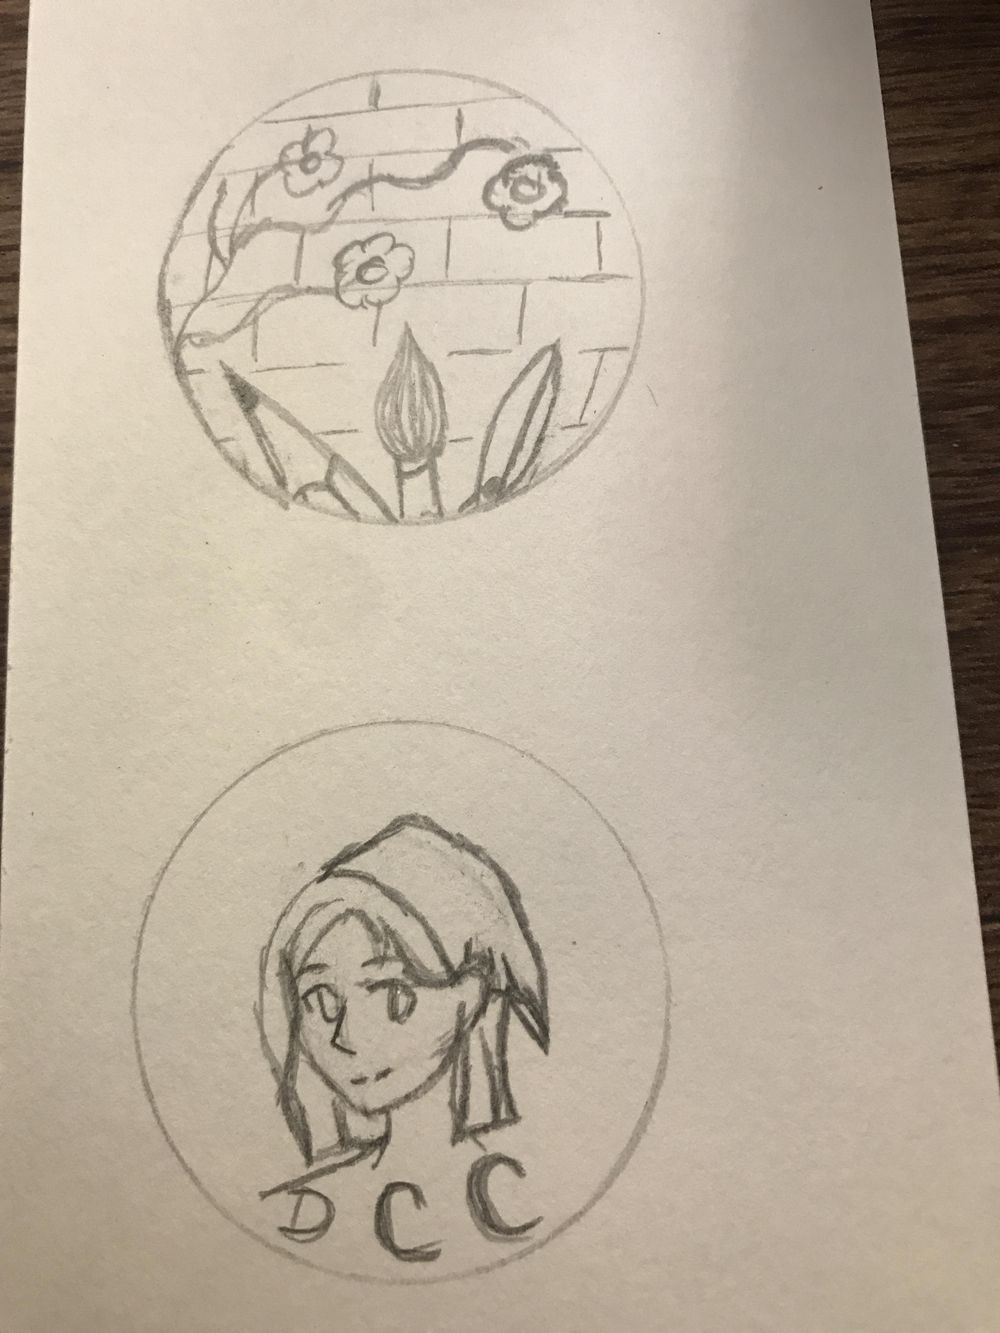 working on new logos for my channel - image 1 - student project